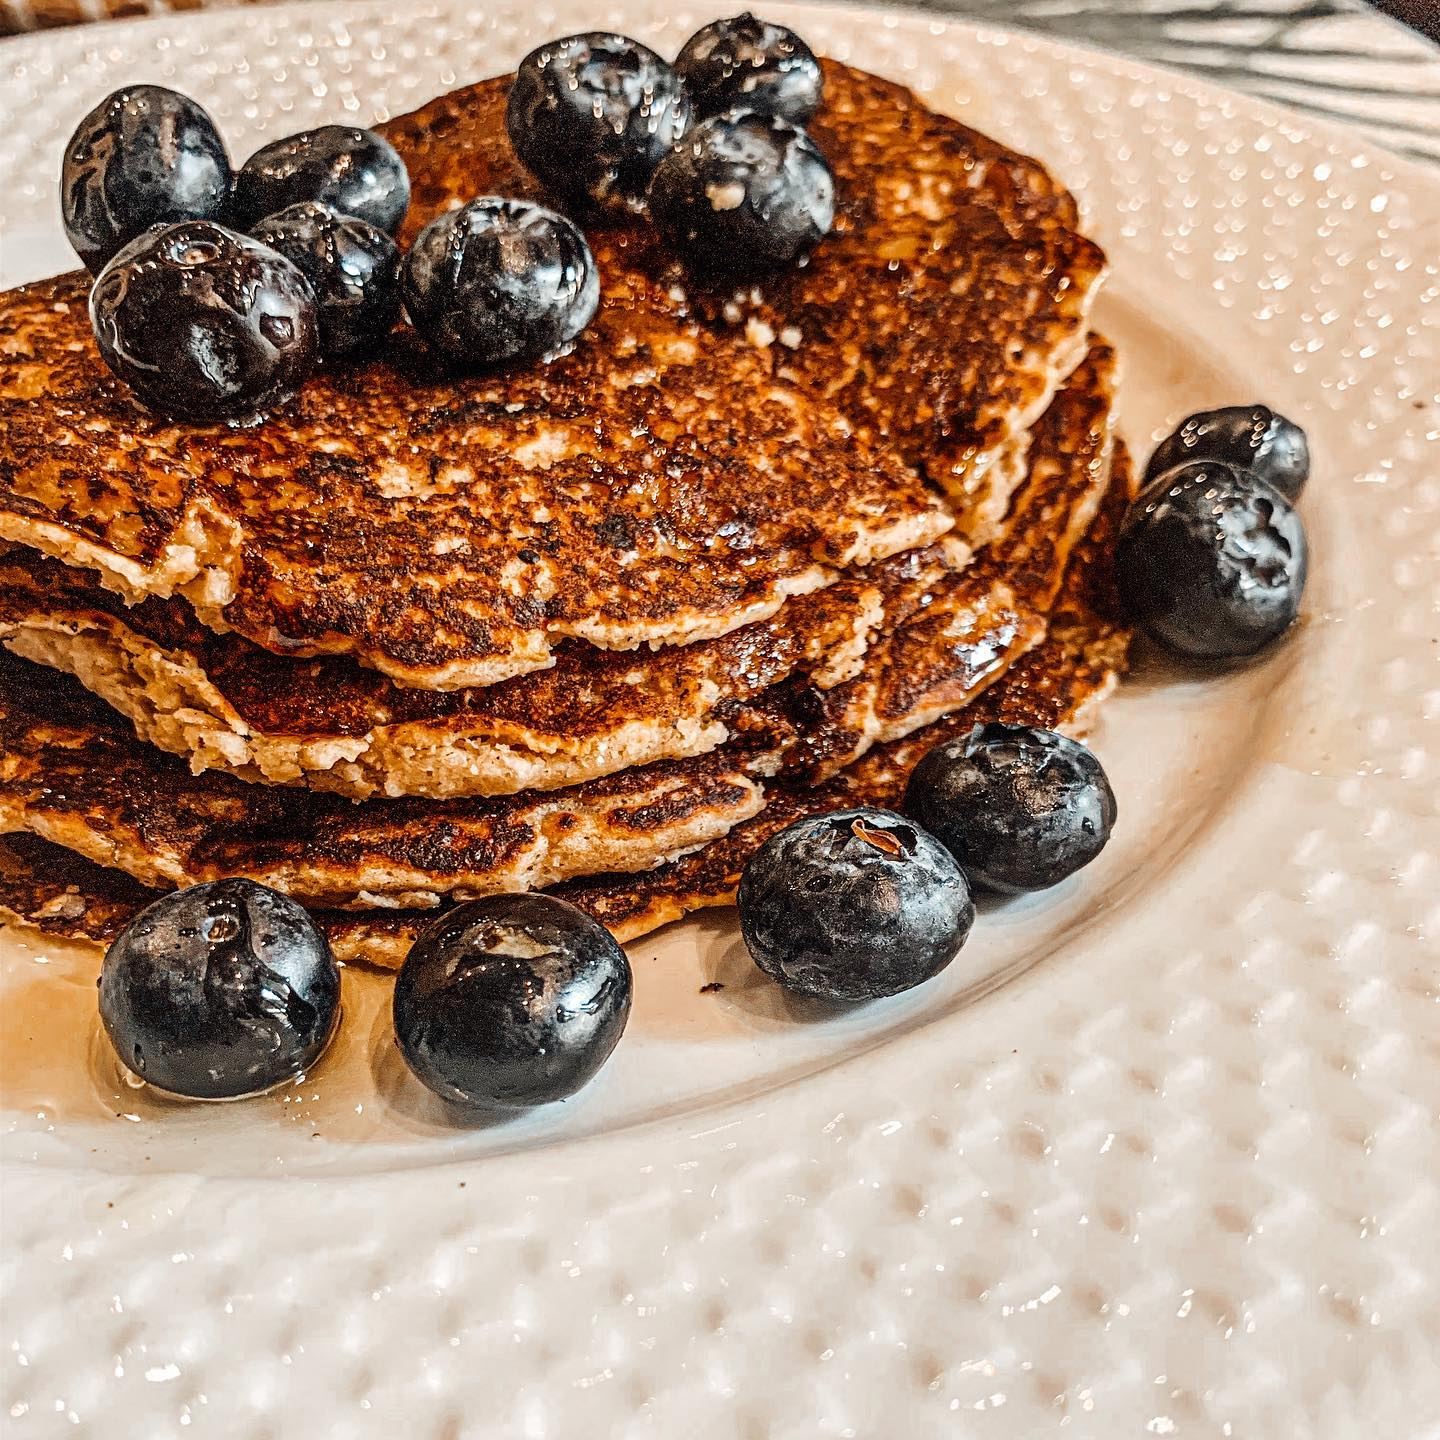 Egg free & Sugar Free Pancake Recipe️ If you are not able to enjoy pancakes because of diet restrictions, I could very well be saving your life right now🙂 These pancakes are absolutely delicious!! I am not able to have regular pancakes with white flour as it hurts my tummy and my husband won't eat pancakes because he doesn't eat eggs. So I have formulated this recipe that helps us both.  There is no white flour, no sugar and no eggs in this recipe. You can enjoy all the goodness and not feel guilty afterwards. Let me know if this is helpful and I will share more recipes like these for you to enjoy ️ 100%healthy and good for the whole family! ———————————————————  Vegan / Vegetarian Pancakes Recipe Ingredients  Step 1 : 60ml water  1 tablespoon flax powder  (Add flaxseed powder to the water and mix well ensuring there are no lumps) This will be your egg substitute- flax egg   Step 2: Then add these to the flax mixture  1 ripe banana 4 tbspns honey or maple syrup if your are vegan 1/2 teaspoon vanilla essence 1 tablespoon of melted butter OR 1 tablespoon melted coconut oil (if you are needing a healthy option)  Step 3: in another bowl add all these and mix together  1/2 teaspoon salt 1/2 teaspoon baking soda  1.5cups oat flour (grind regular oats in a processor or nutribullet to make oat flour)  Mix wet and dry ingredients together - add a bit of buttermilk to get a nice batter consistency (use almond milk if you are vegan)  Method  Preheat a non-stick pan, you'll need low to medium temperature. Cover the surface with coconut oil or butter or spray and cook.  Using a big spoon or a ladle start making small pancakes, leaving some space in between, so that you can flip them easily when ready. When the edges of the pancakes look done and bubbles come up it's time to flip the pancakes, carefully, but quickly. Cook on the other side as well. Serve immediately with your favorite toppings️ I used blueberries and honey - My husband likes whipped cream and strawberries 🥰